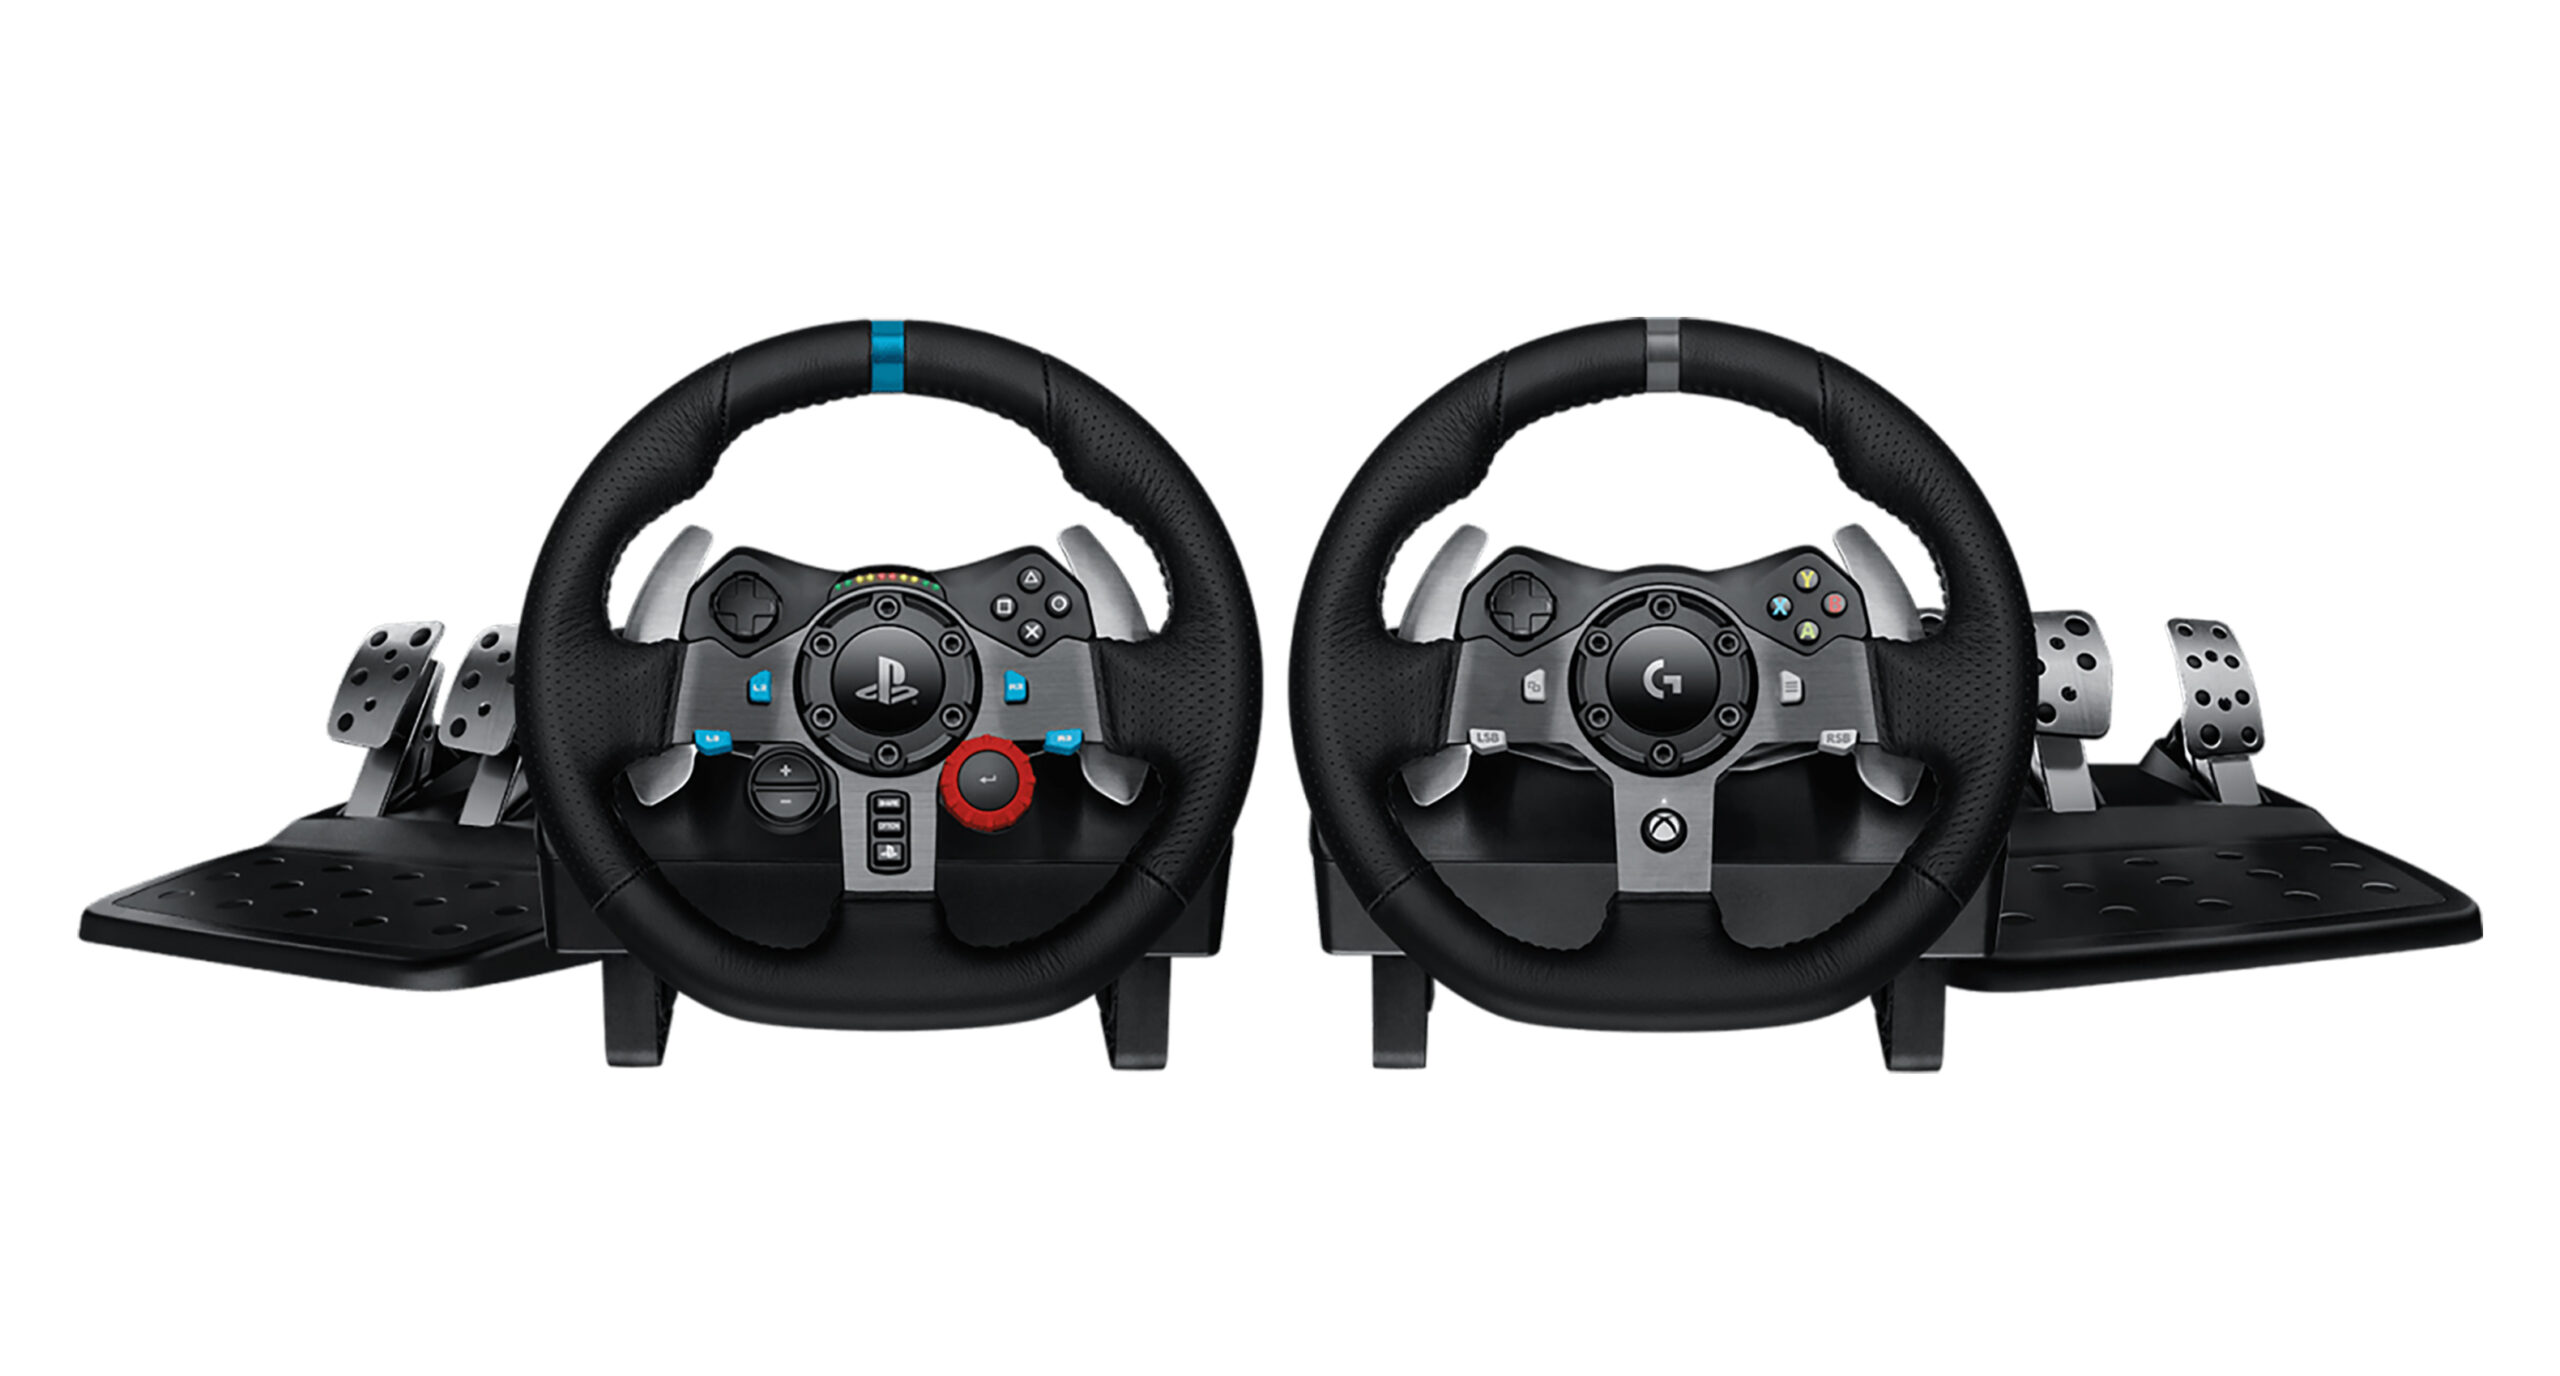 Logitech G29 racing wheel and pedals